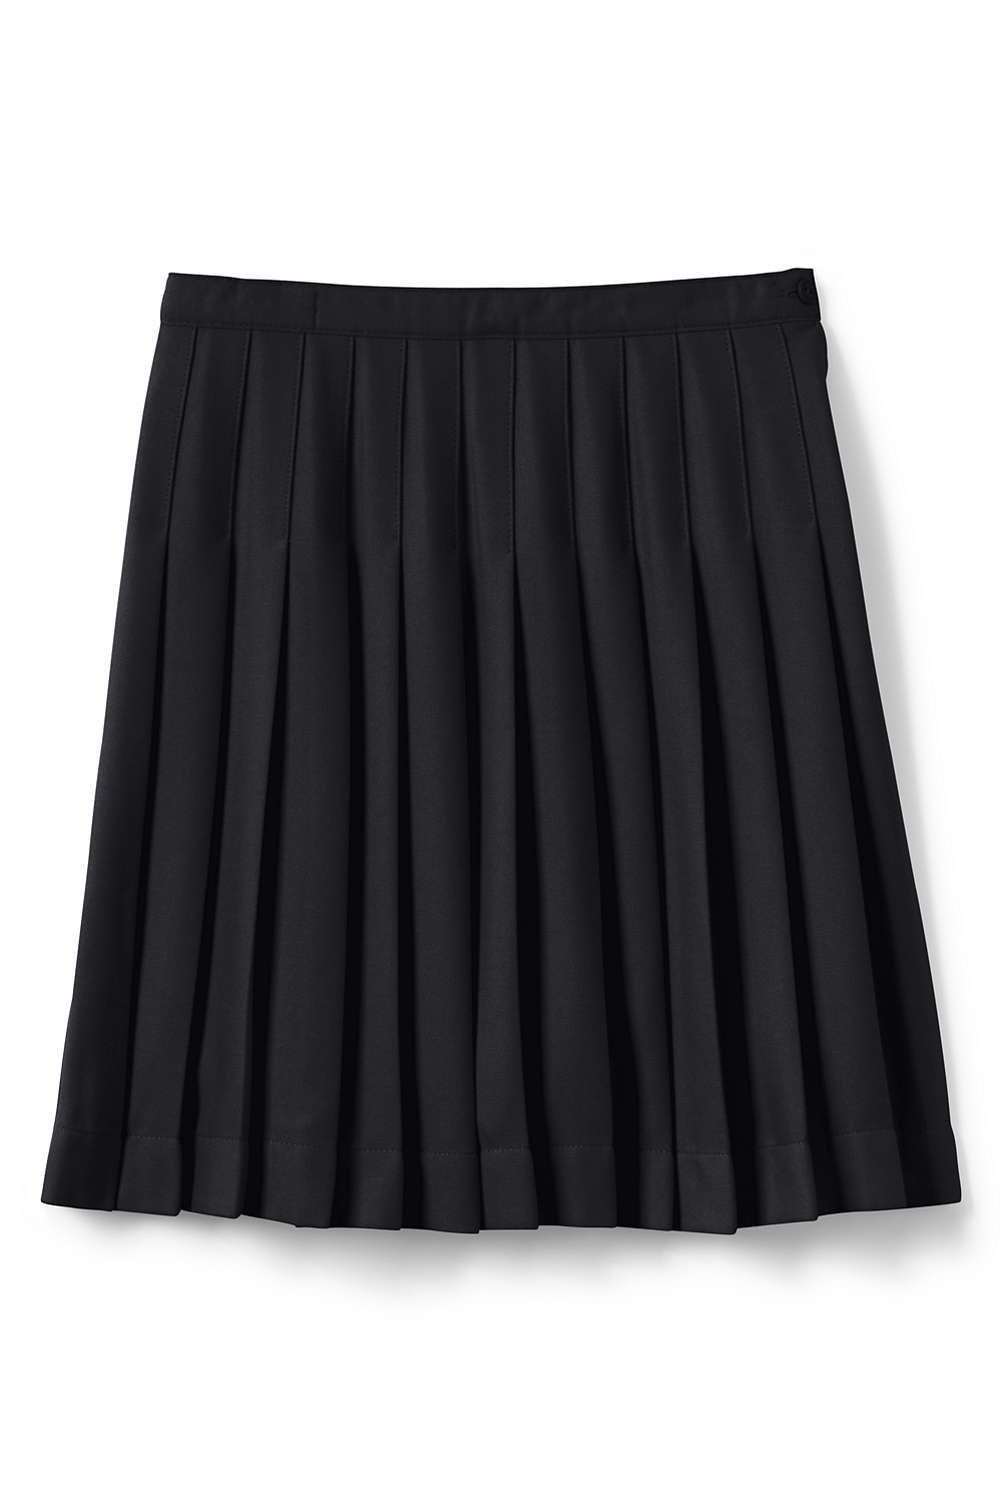 top fashion size 7 details for Girls Solid Pleated Skirt Below the Knee